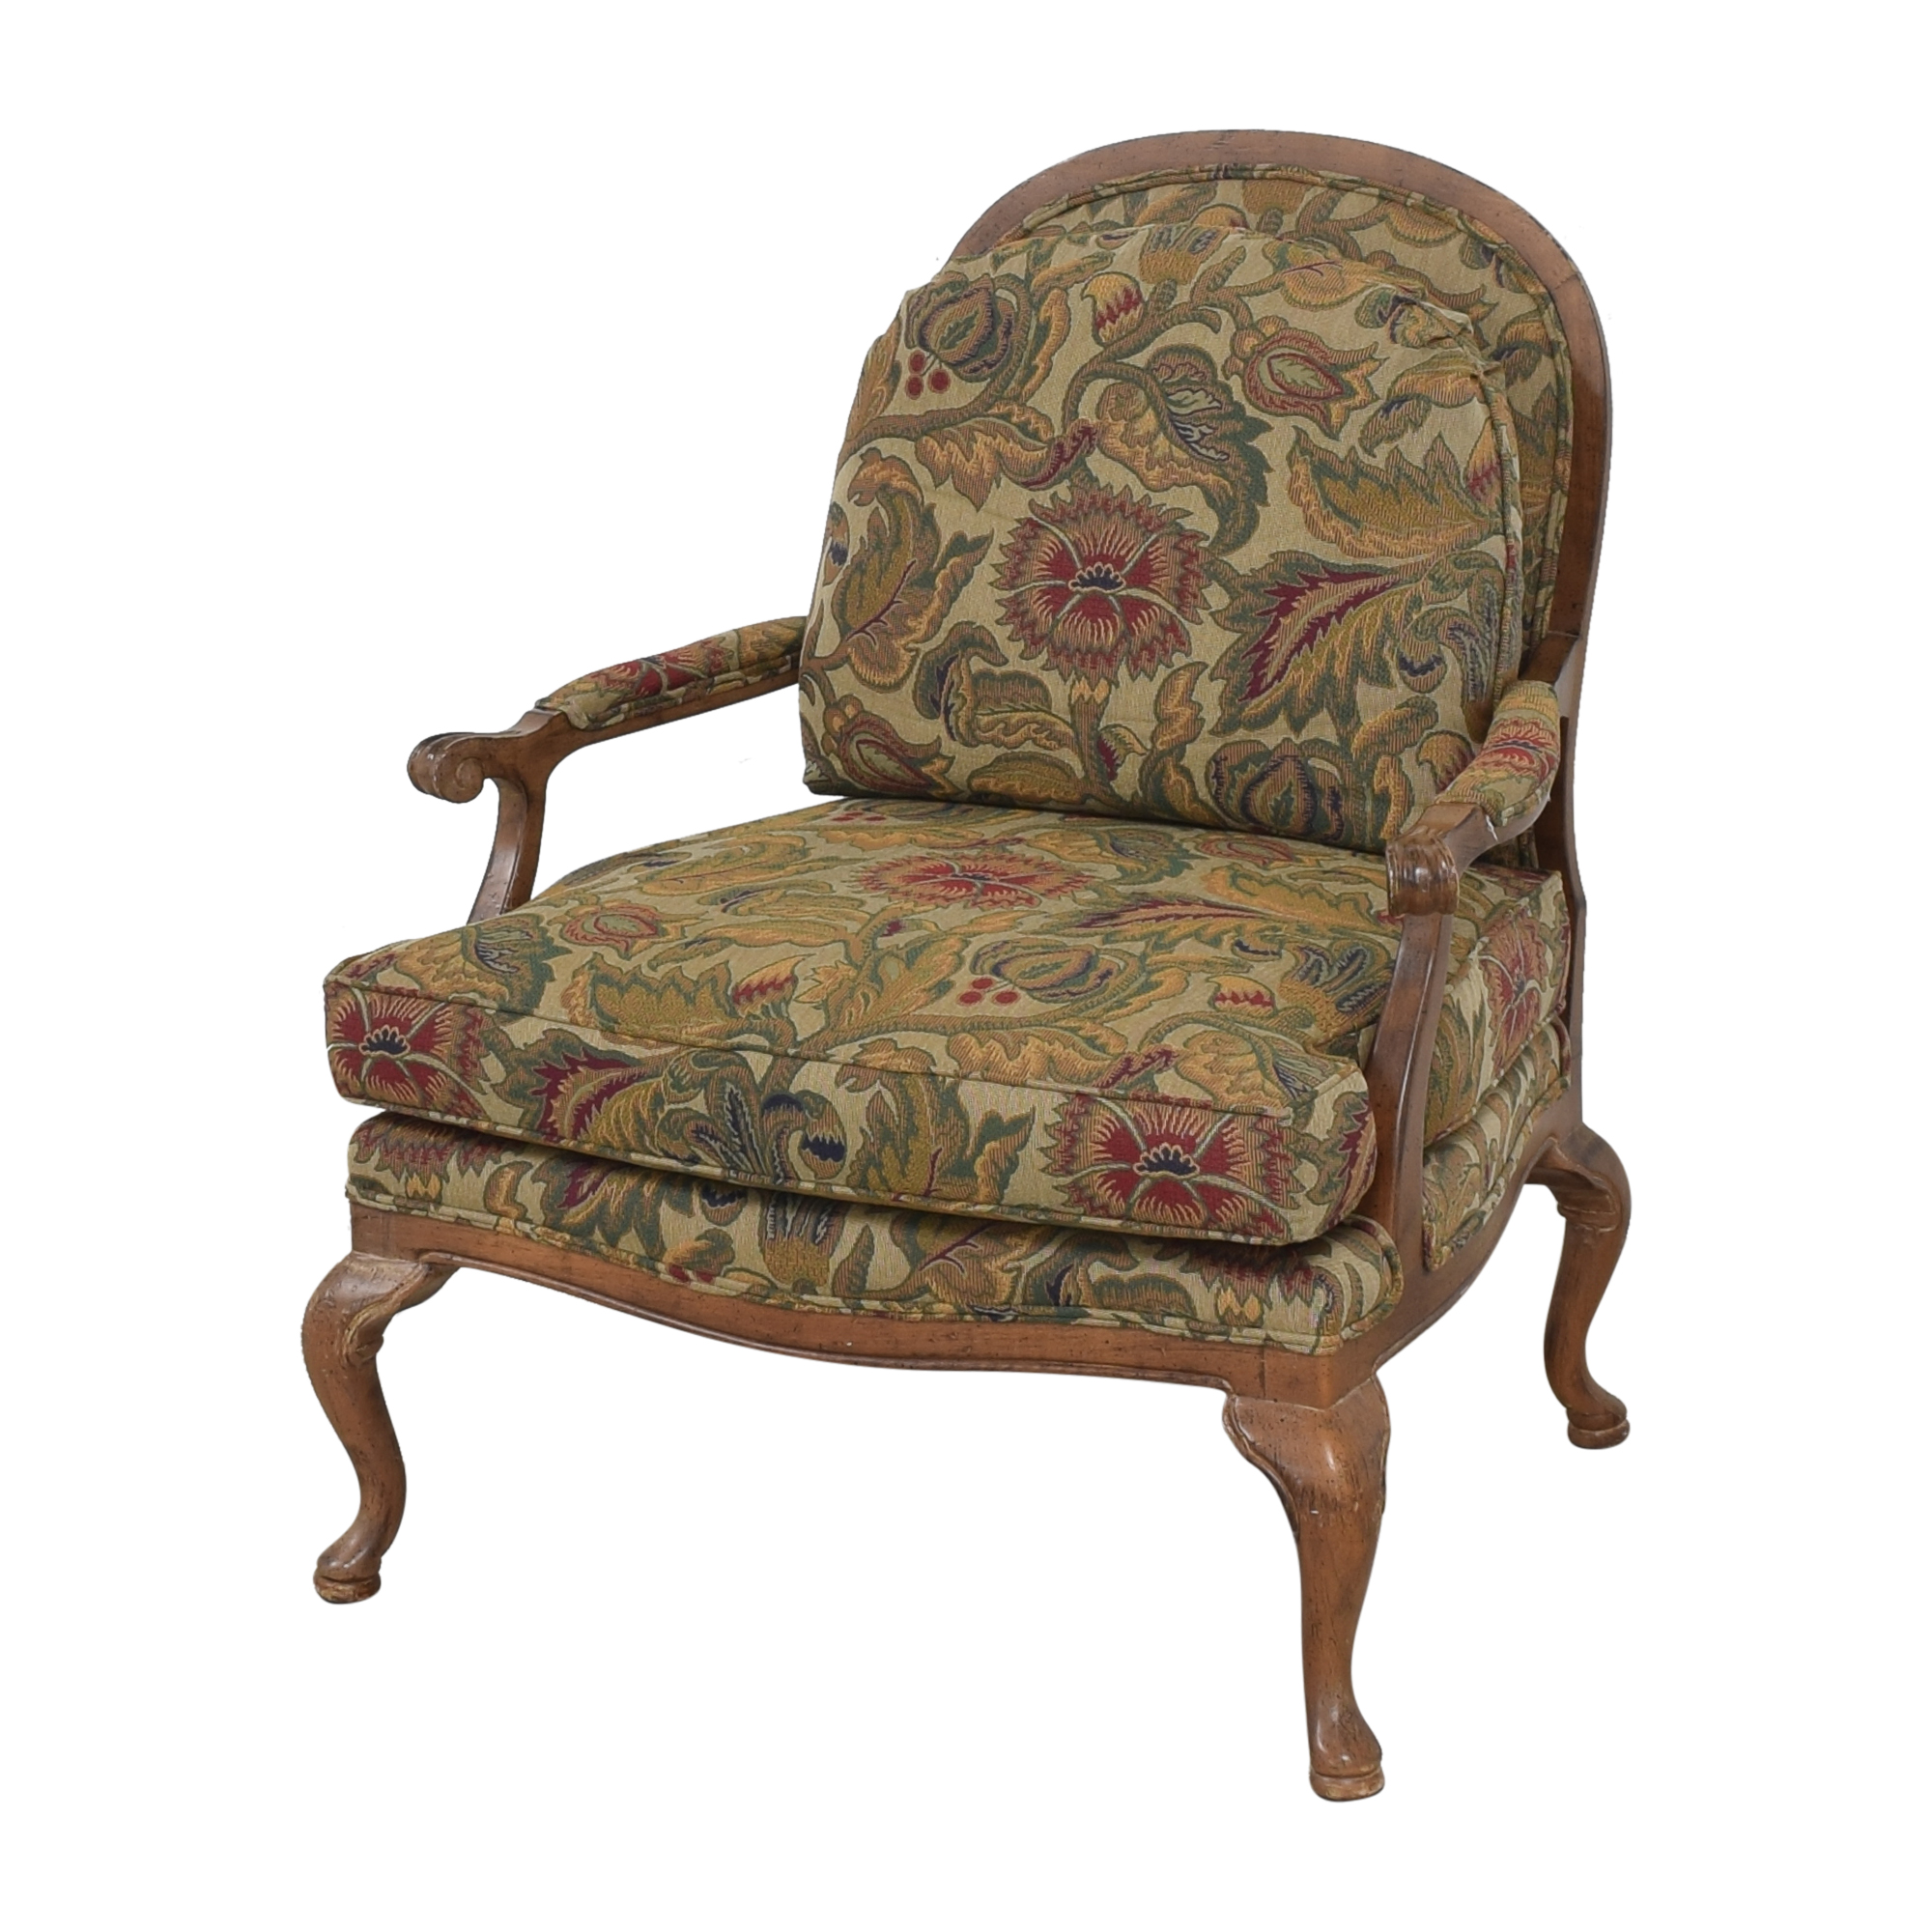 shop Thomasville Thomasville Bergere Chair and Ottoman online